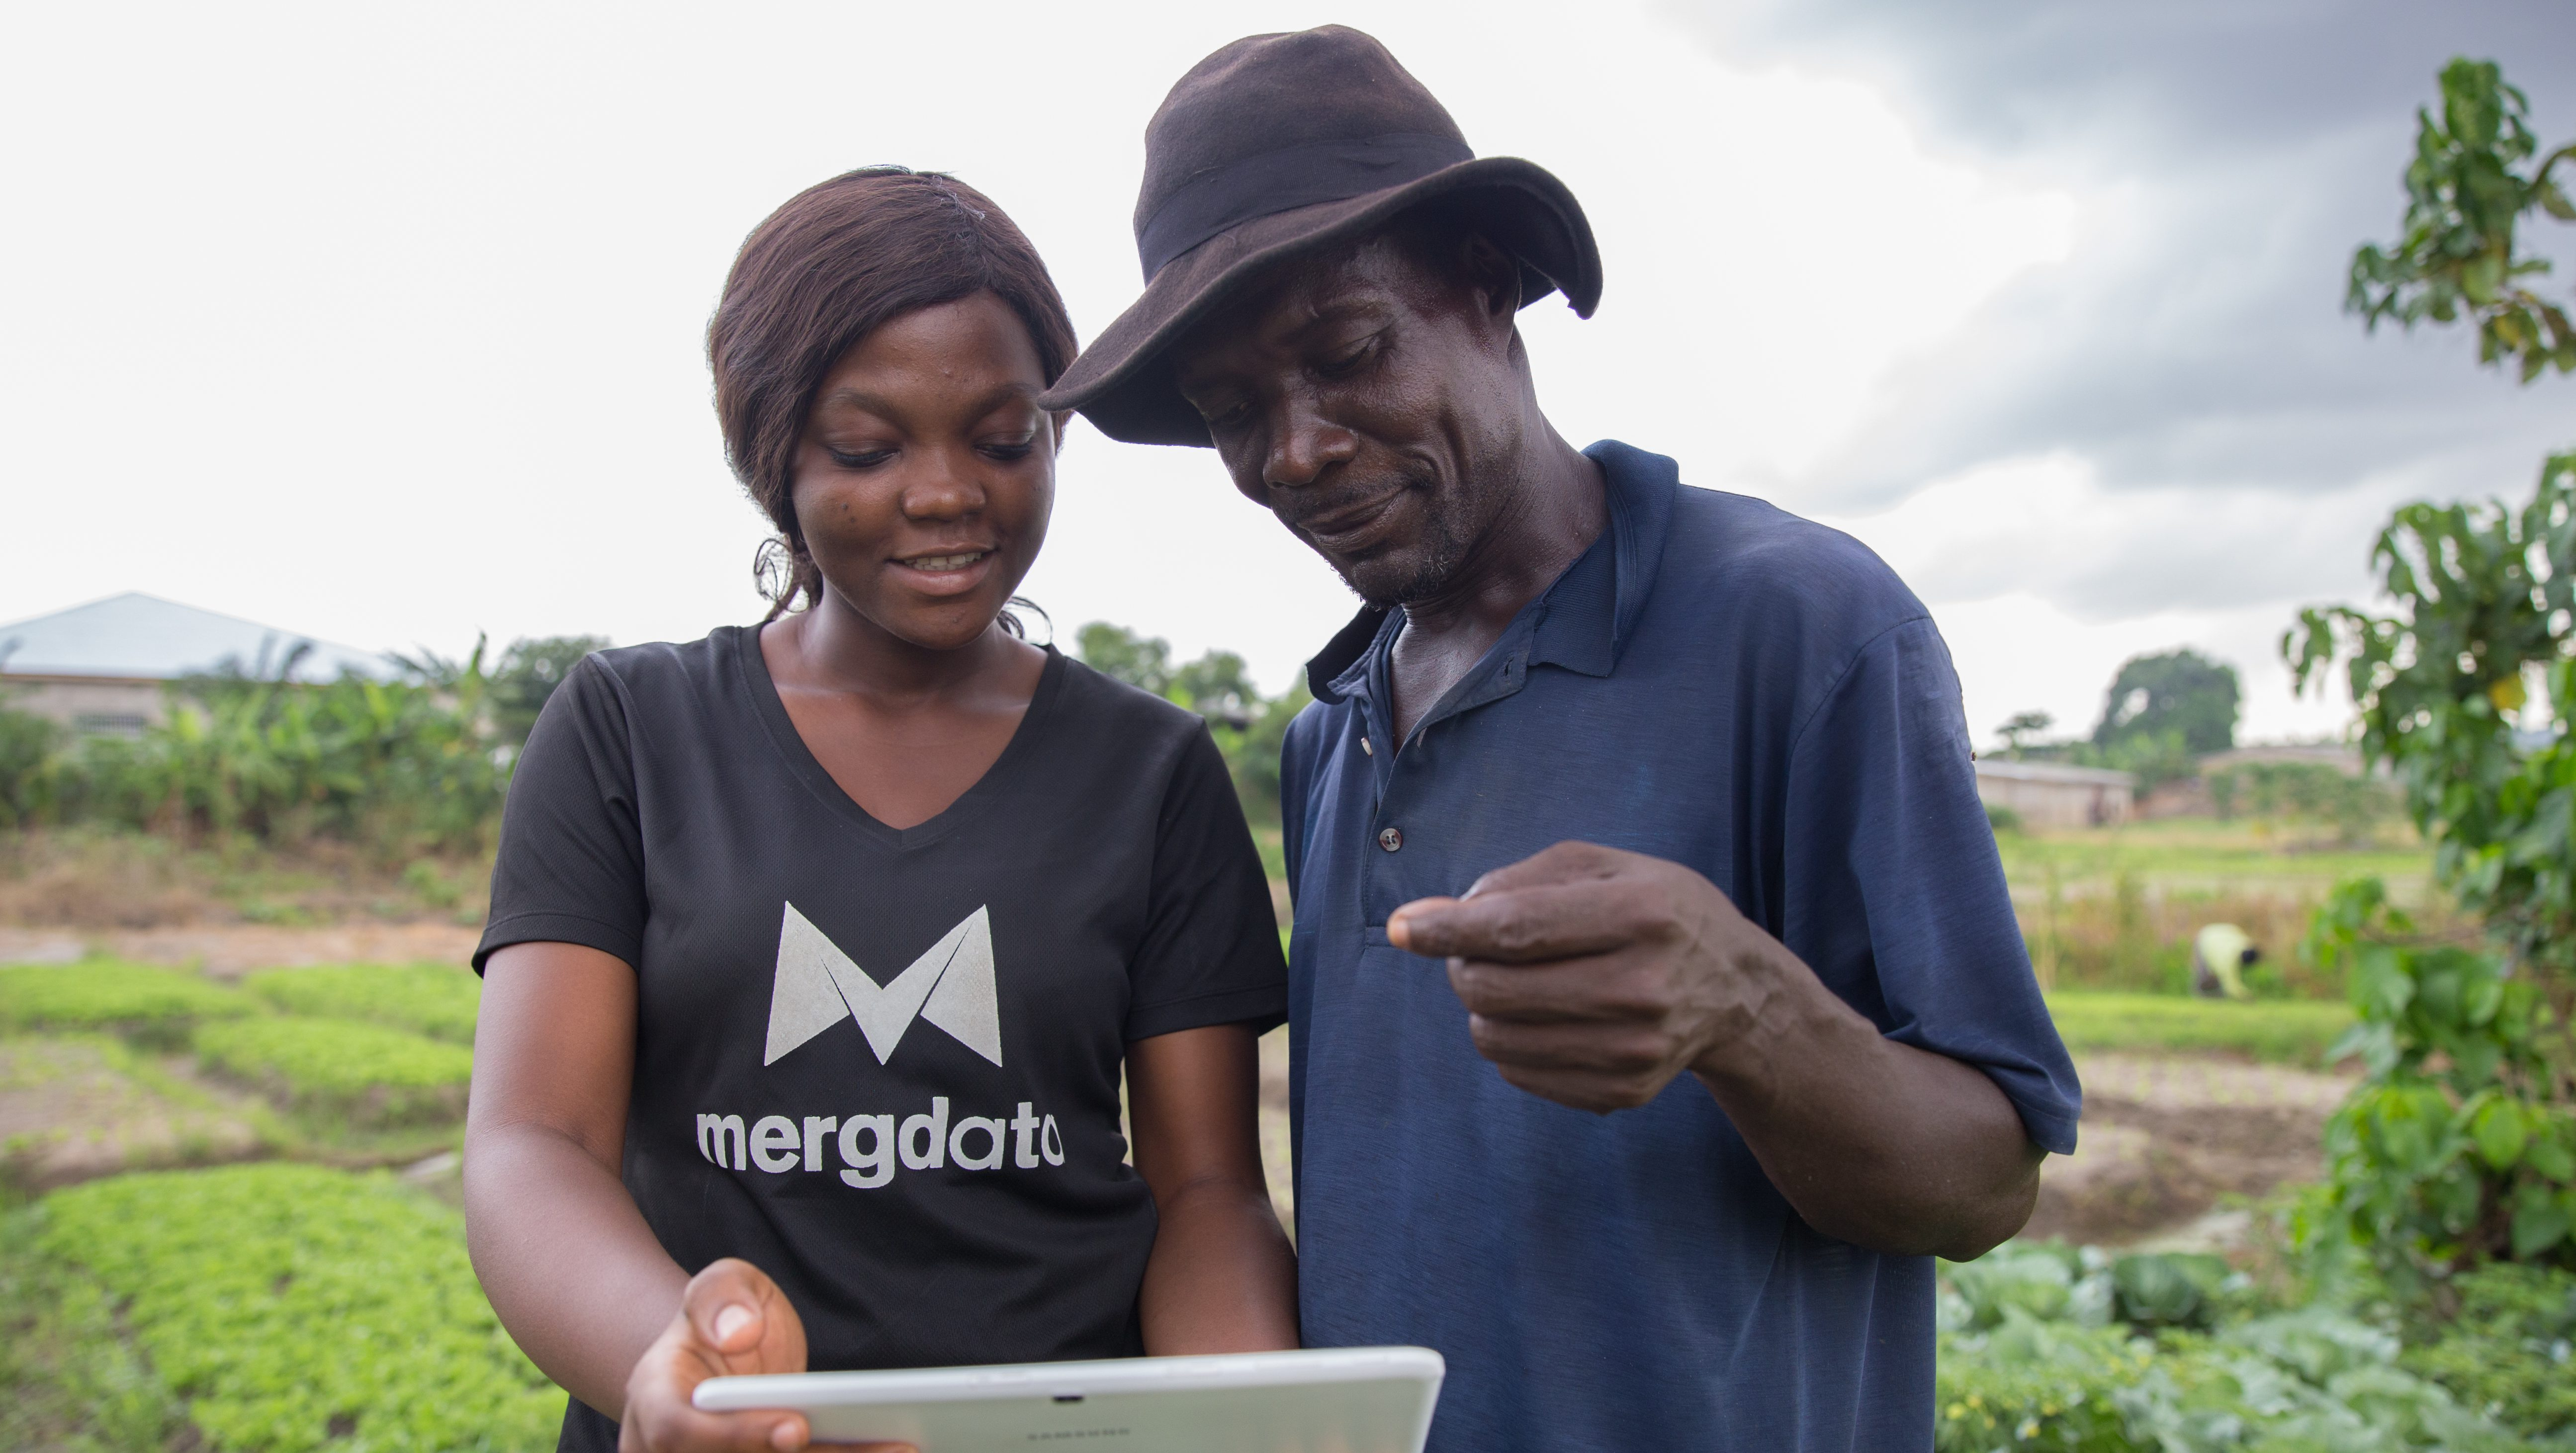 Bernice Adu-Boahen from Farmerline explains to Sam Emmanuel how the Mergdata service works at Sam's farm in Gyinase, Kumasi, Ghana. Mergdata gives farmers useful information like weather, market prices and farming tips on their mobile phones to help them improve their harvest and get the best prices for it.